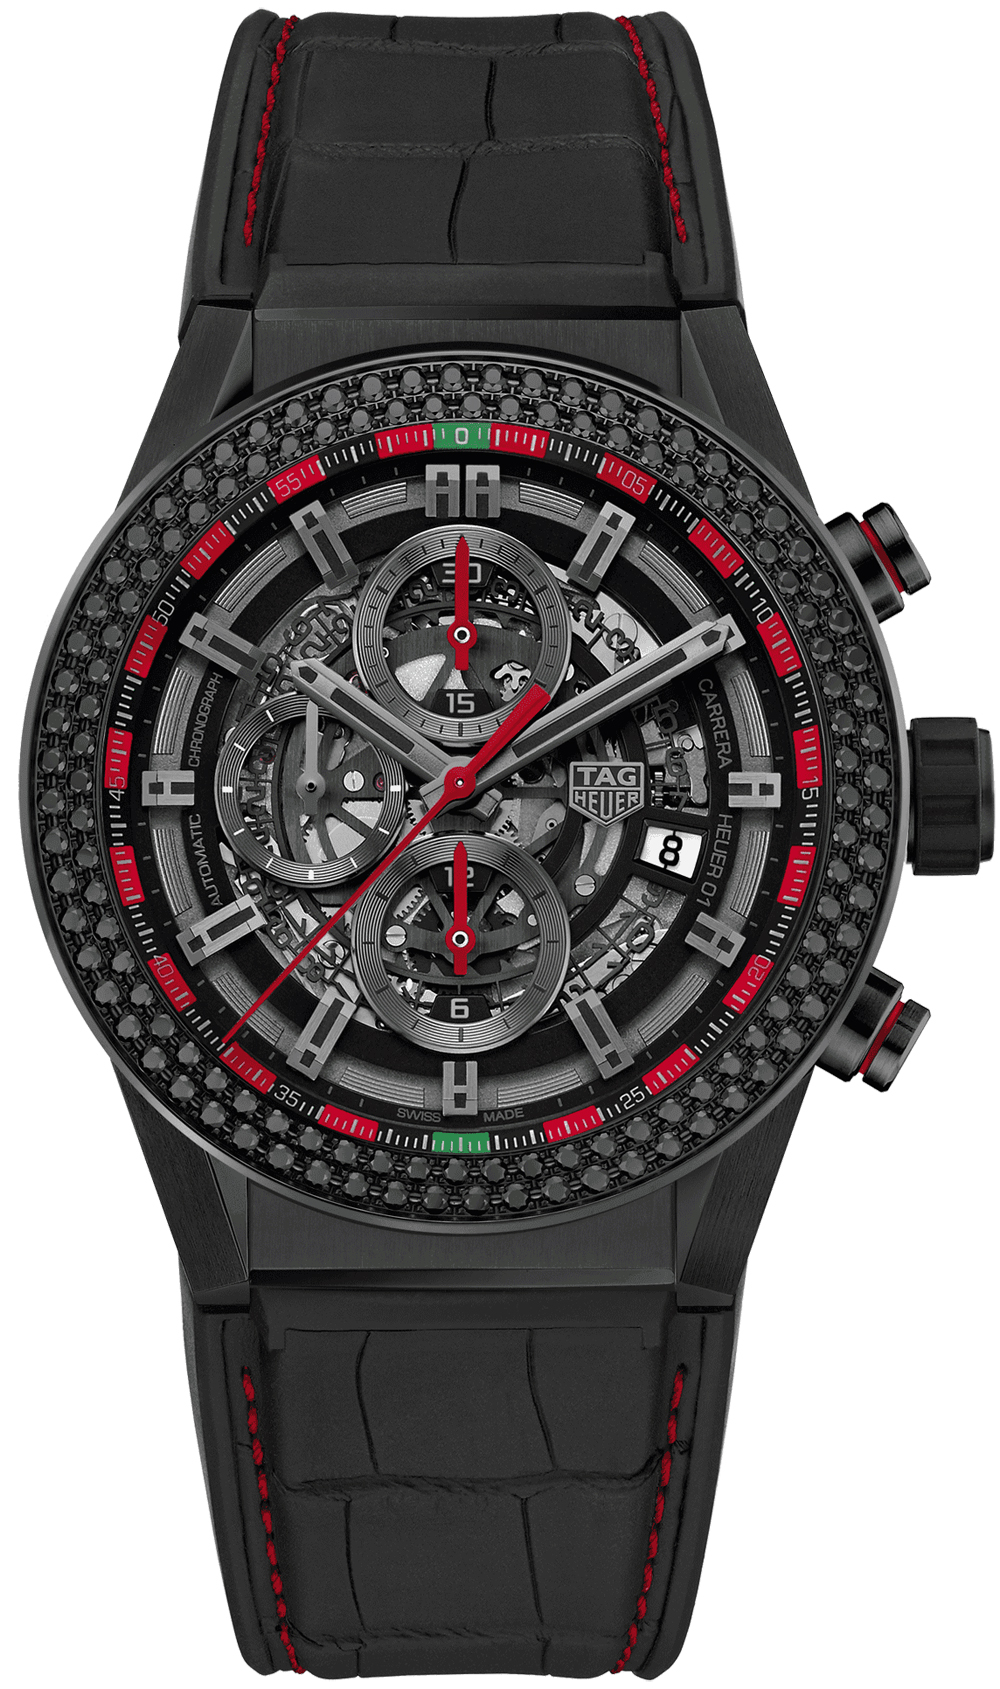 Retail Value Of Car >> CAR2A1E.FC6400 | TAG Heuer Las Vegas Limited Edition Watch